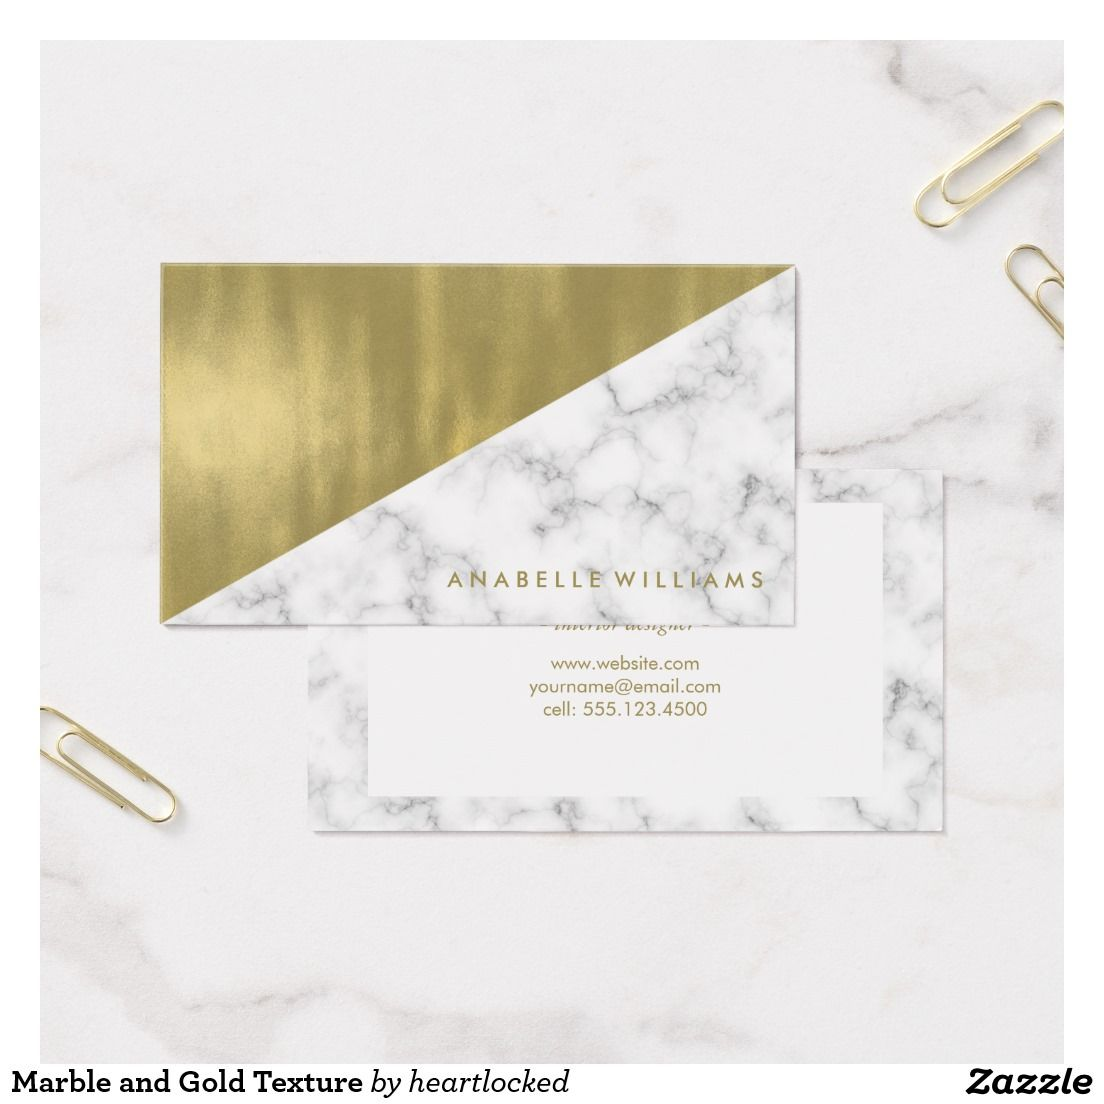 Marble and Gold Texture Business Card   Business cards and Business